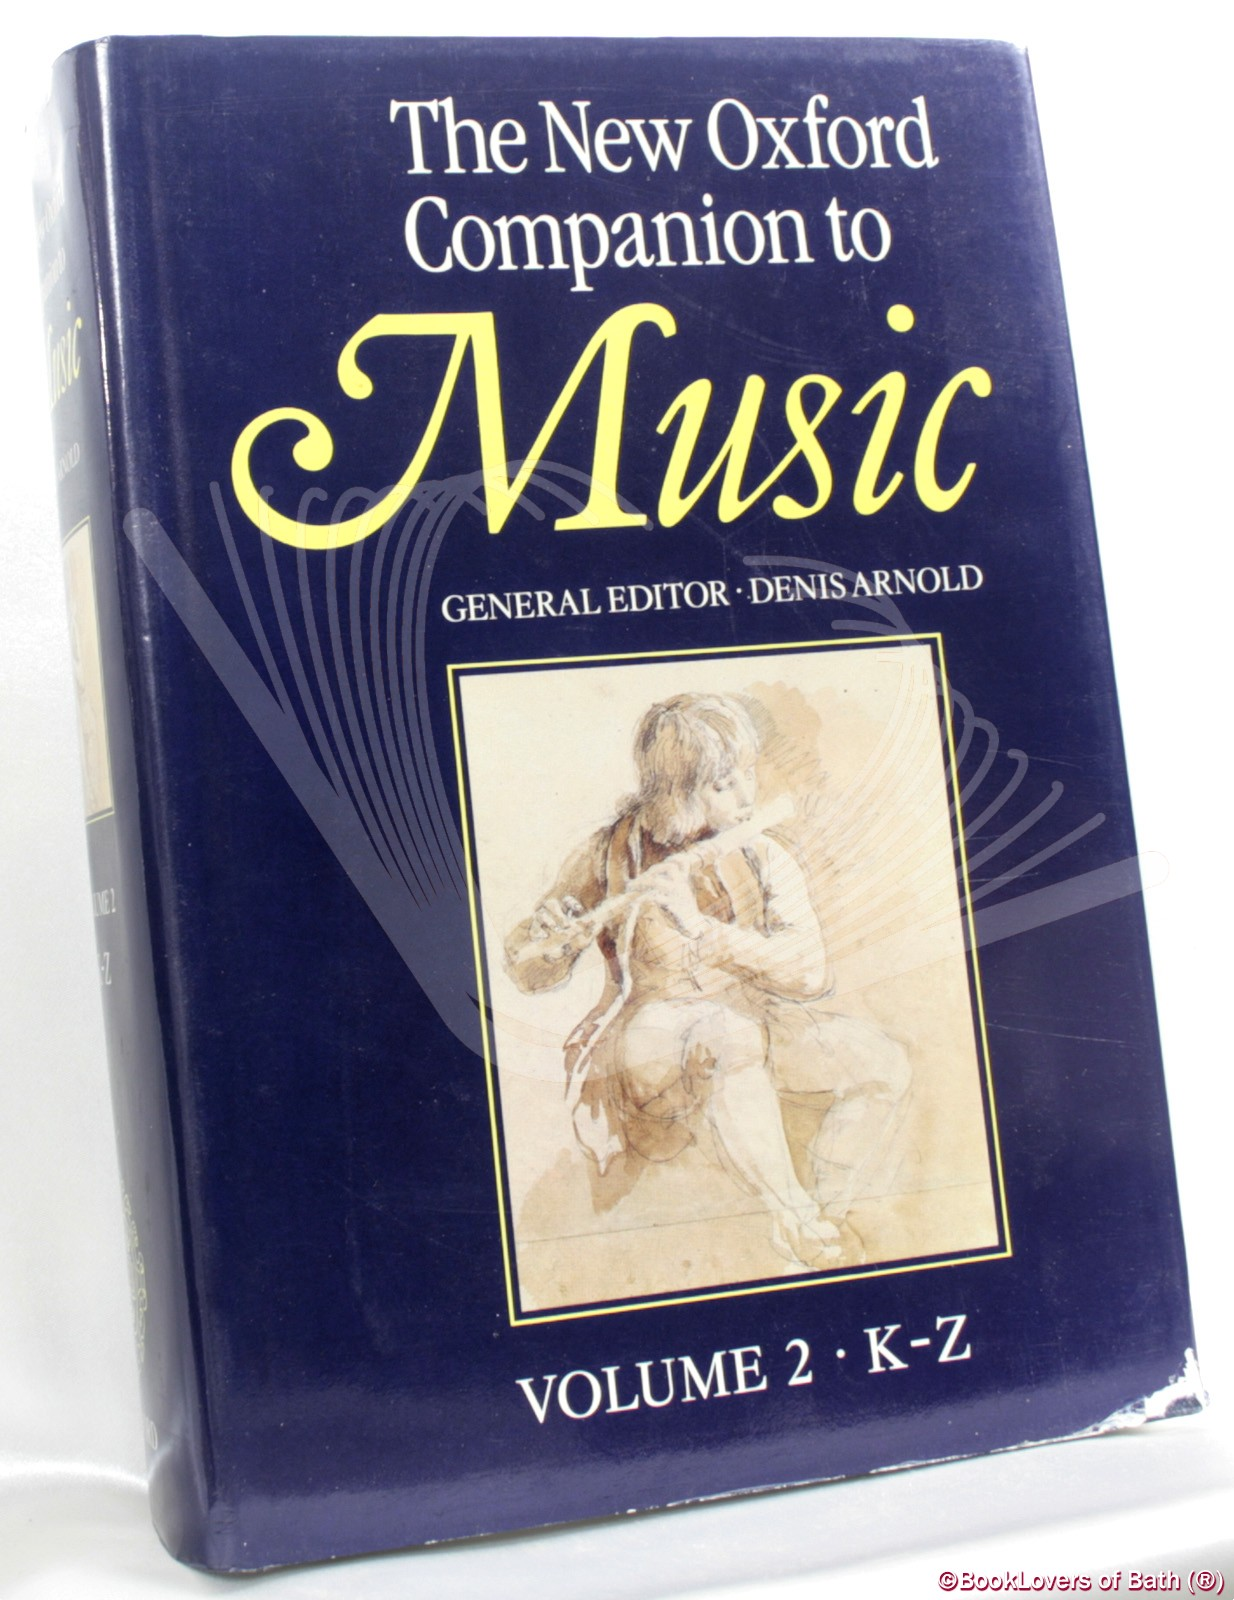 The New Oxford Companion to Music Edited by Denis Arnold